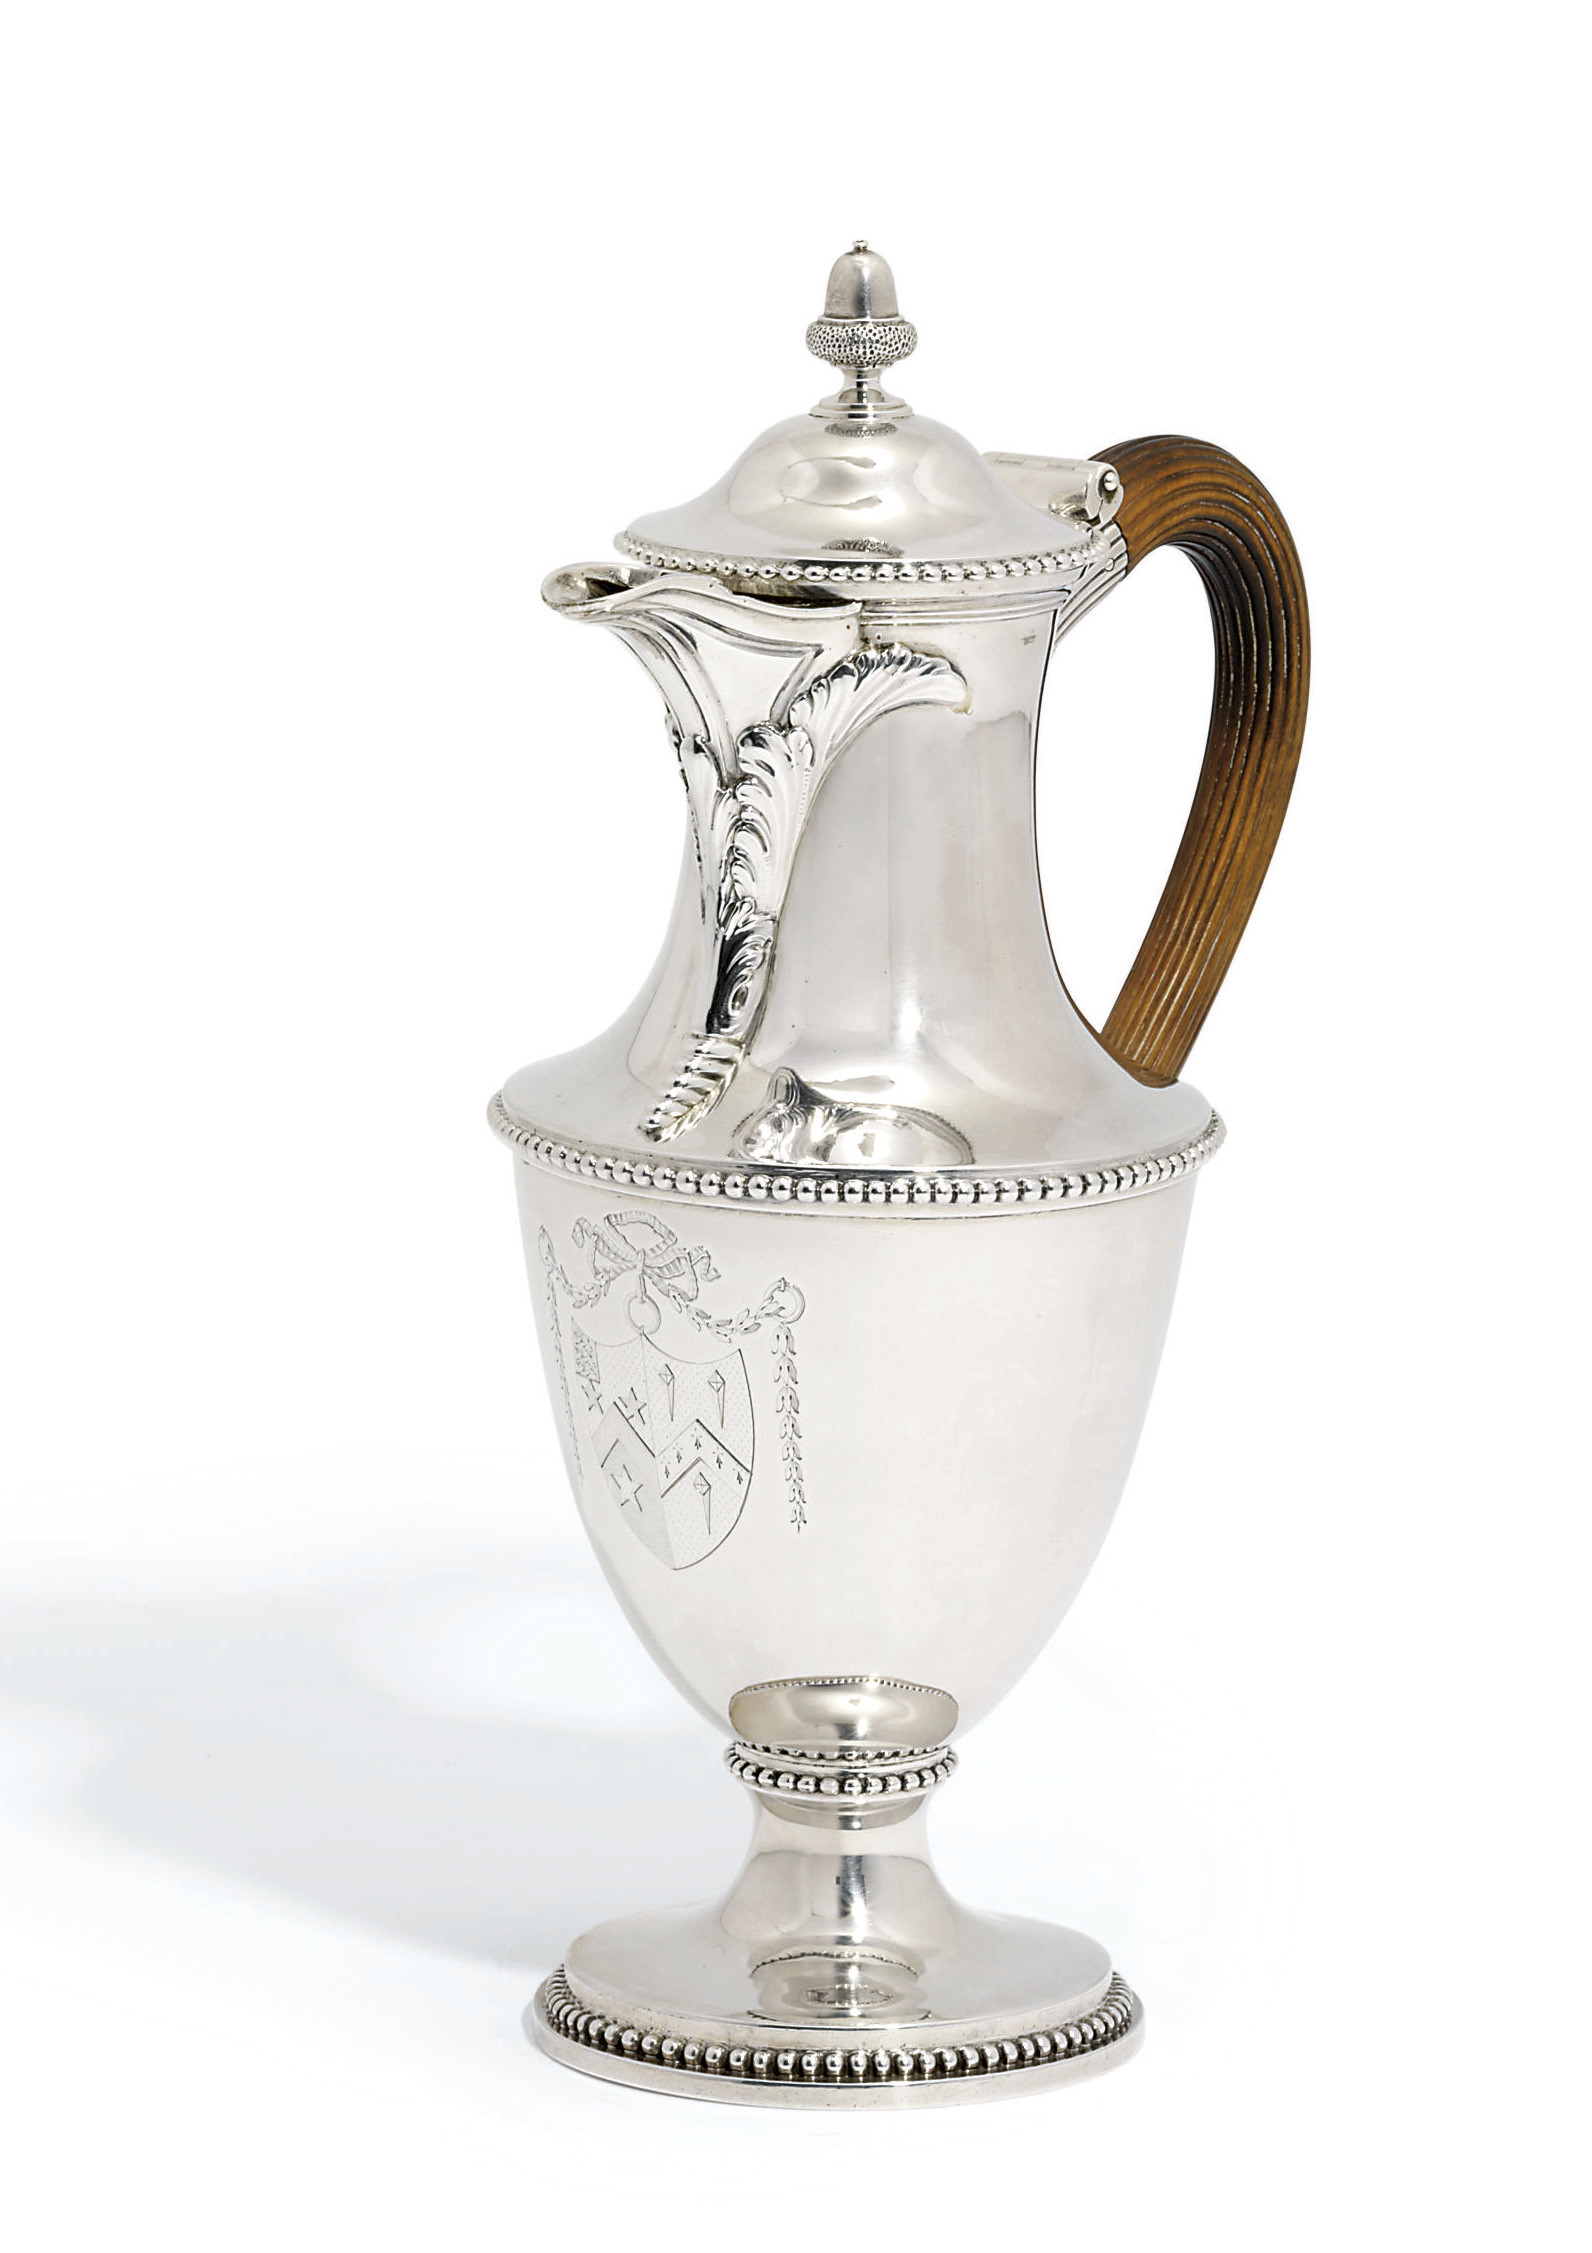 A GEORGE III SILVER HOT-WATER